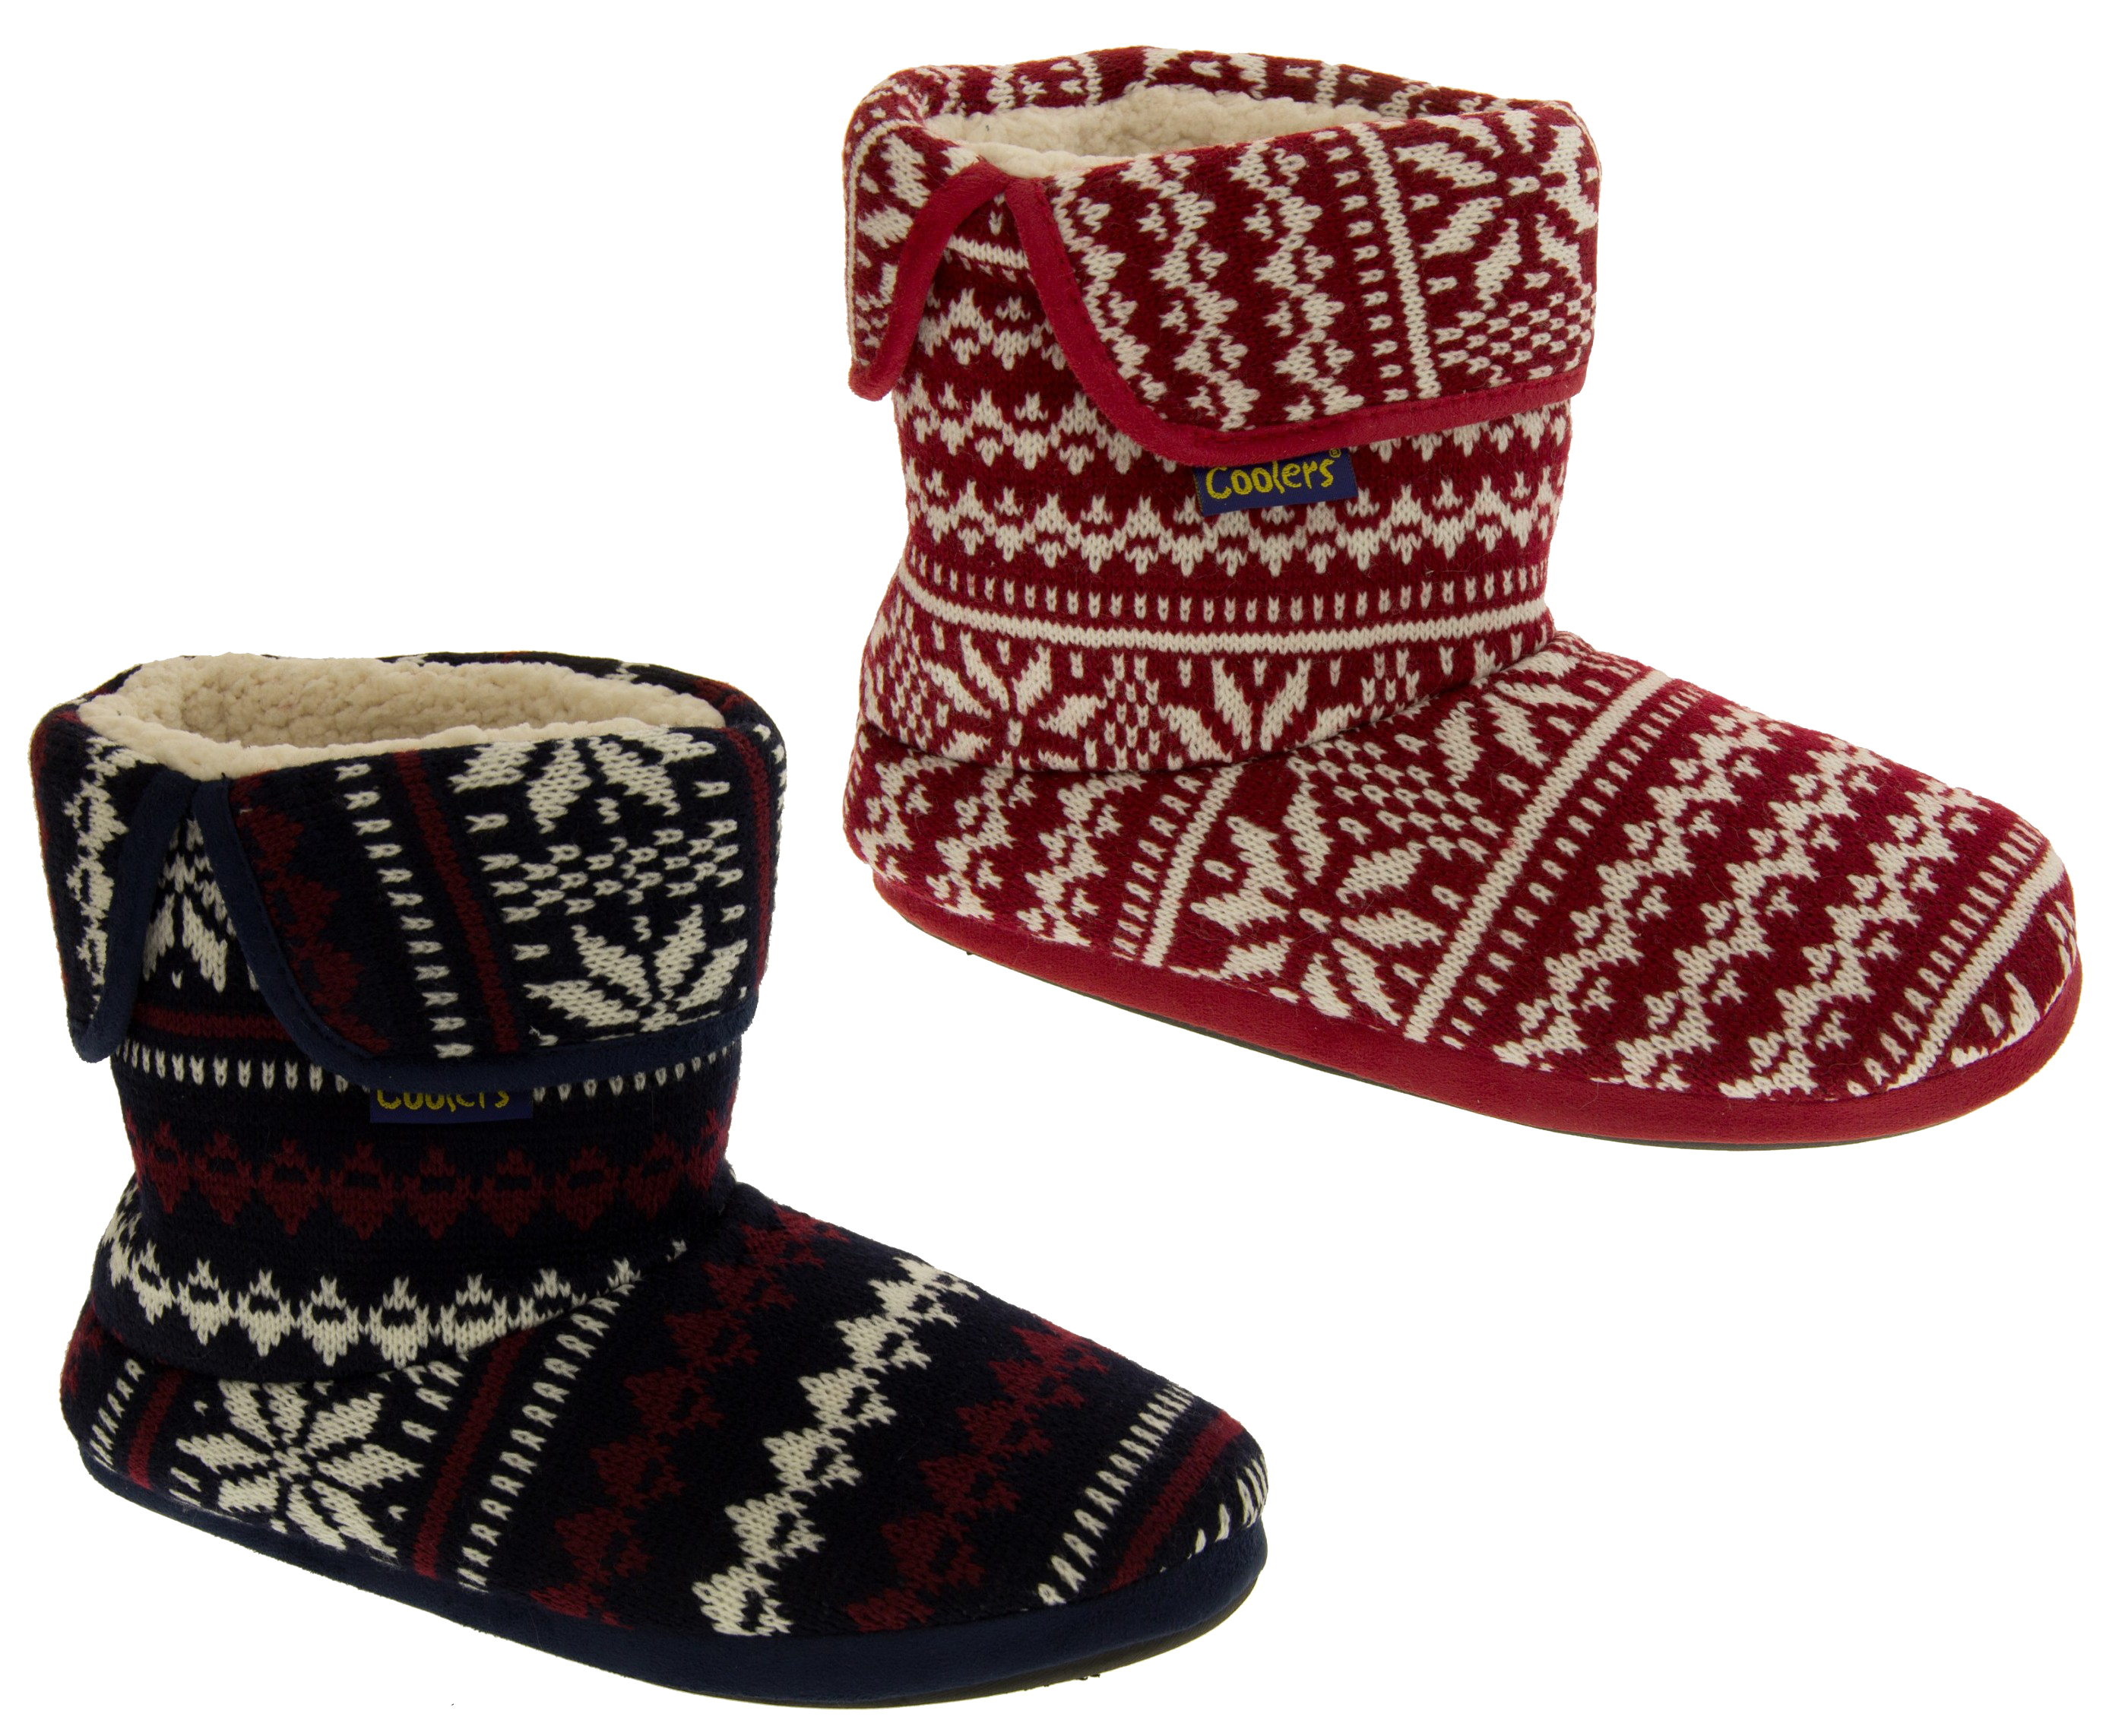 Mens Coolers Fairisle Boot Slippers Warm Faux Wool Lined Knitted